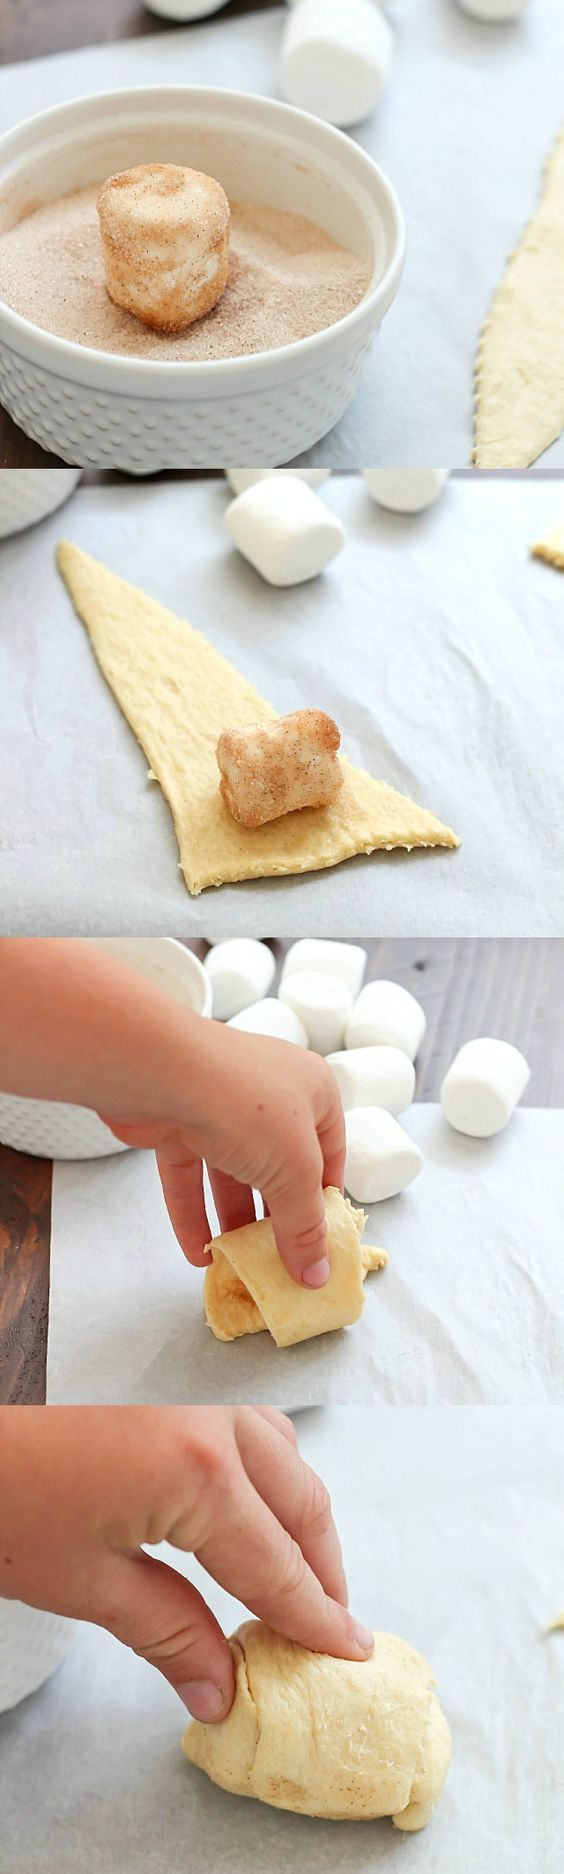 A fun Easter treat that teaches children (and adults!) the real reason behind the holiday of Easter. These resurrection rolls are so easy to make and absolutely delicious!